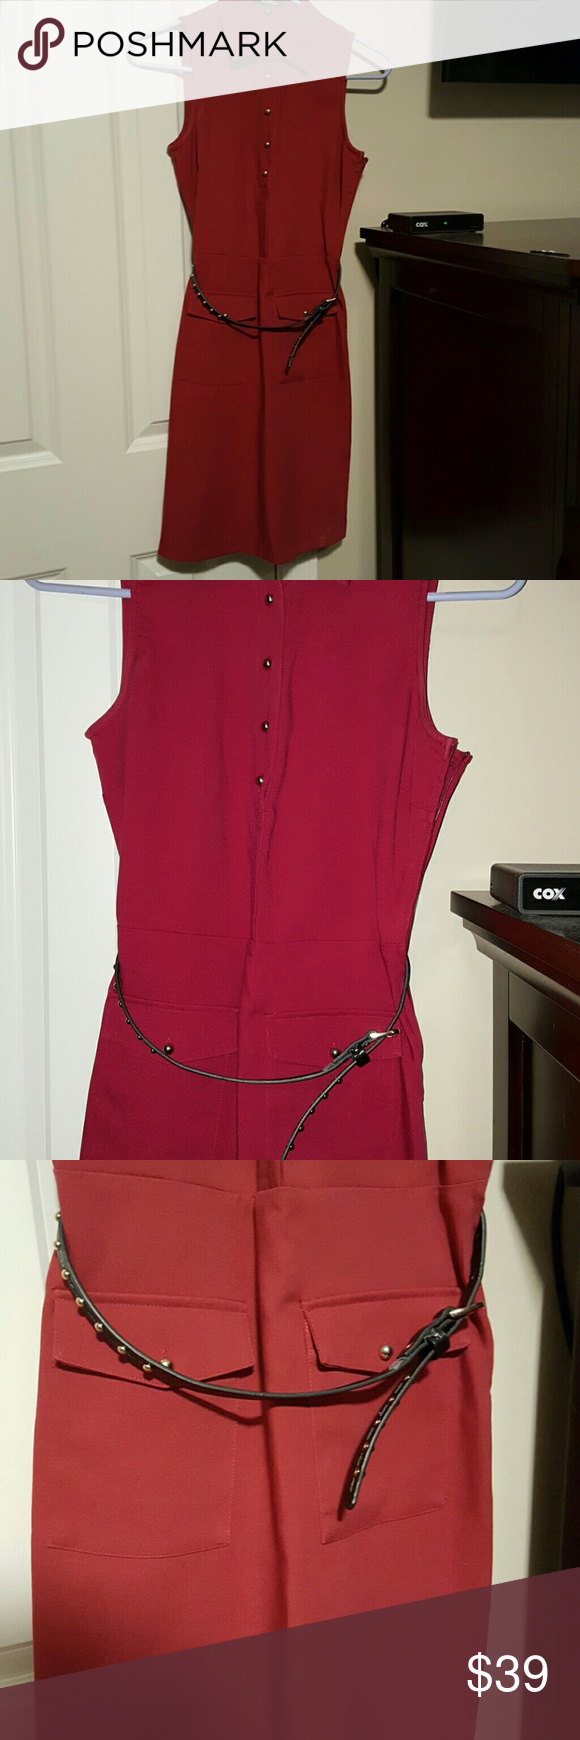 Xoxo maroon burgundy shirt dress xs! Adorable shirt dress for fall and winter! Xoxo size xs only worn twice! XOXO Dresses Midi